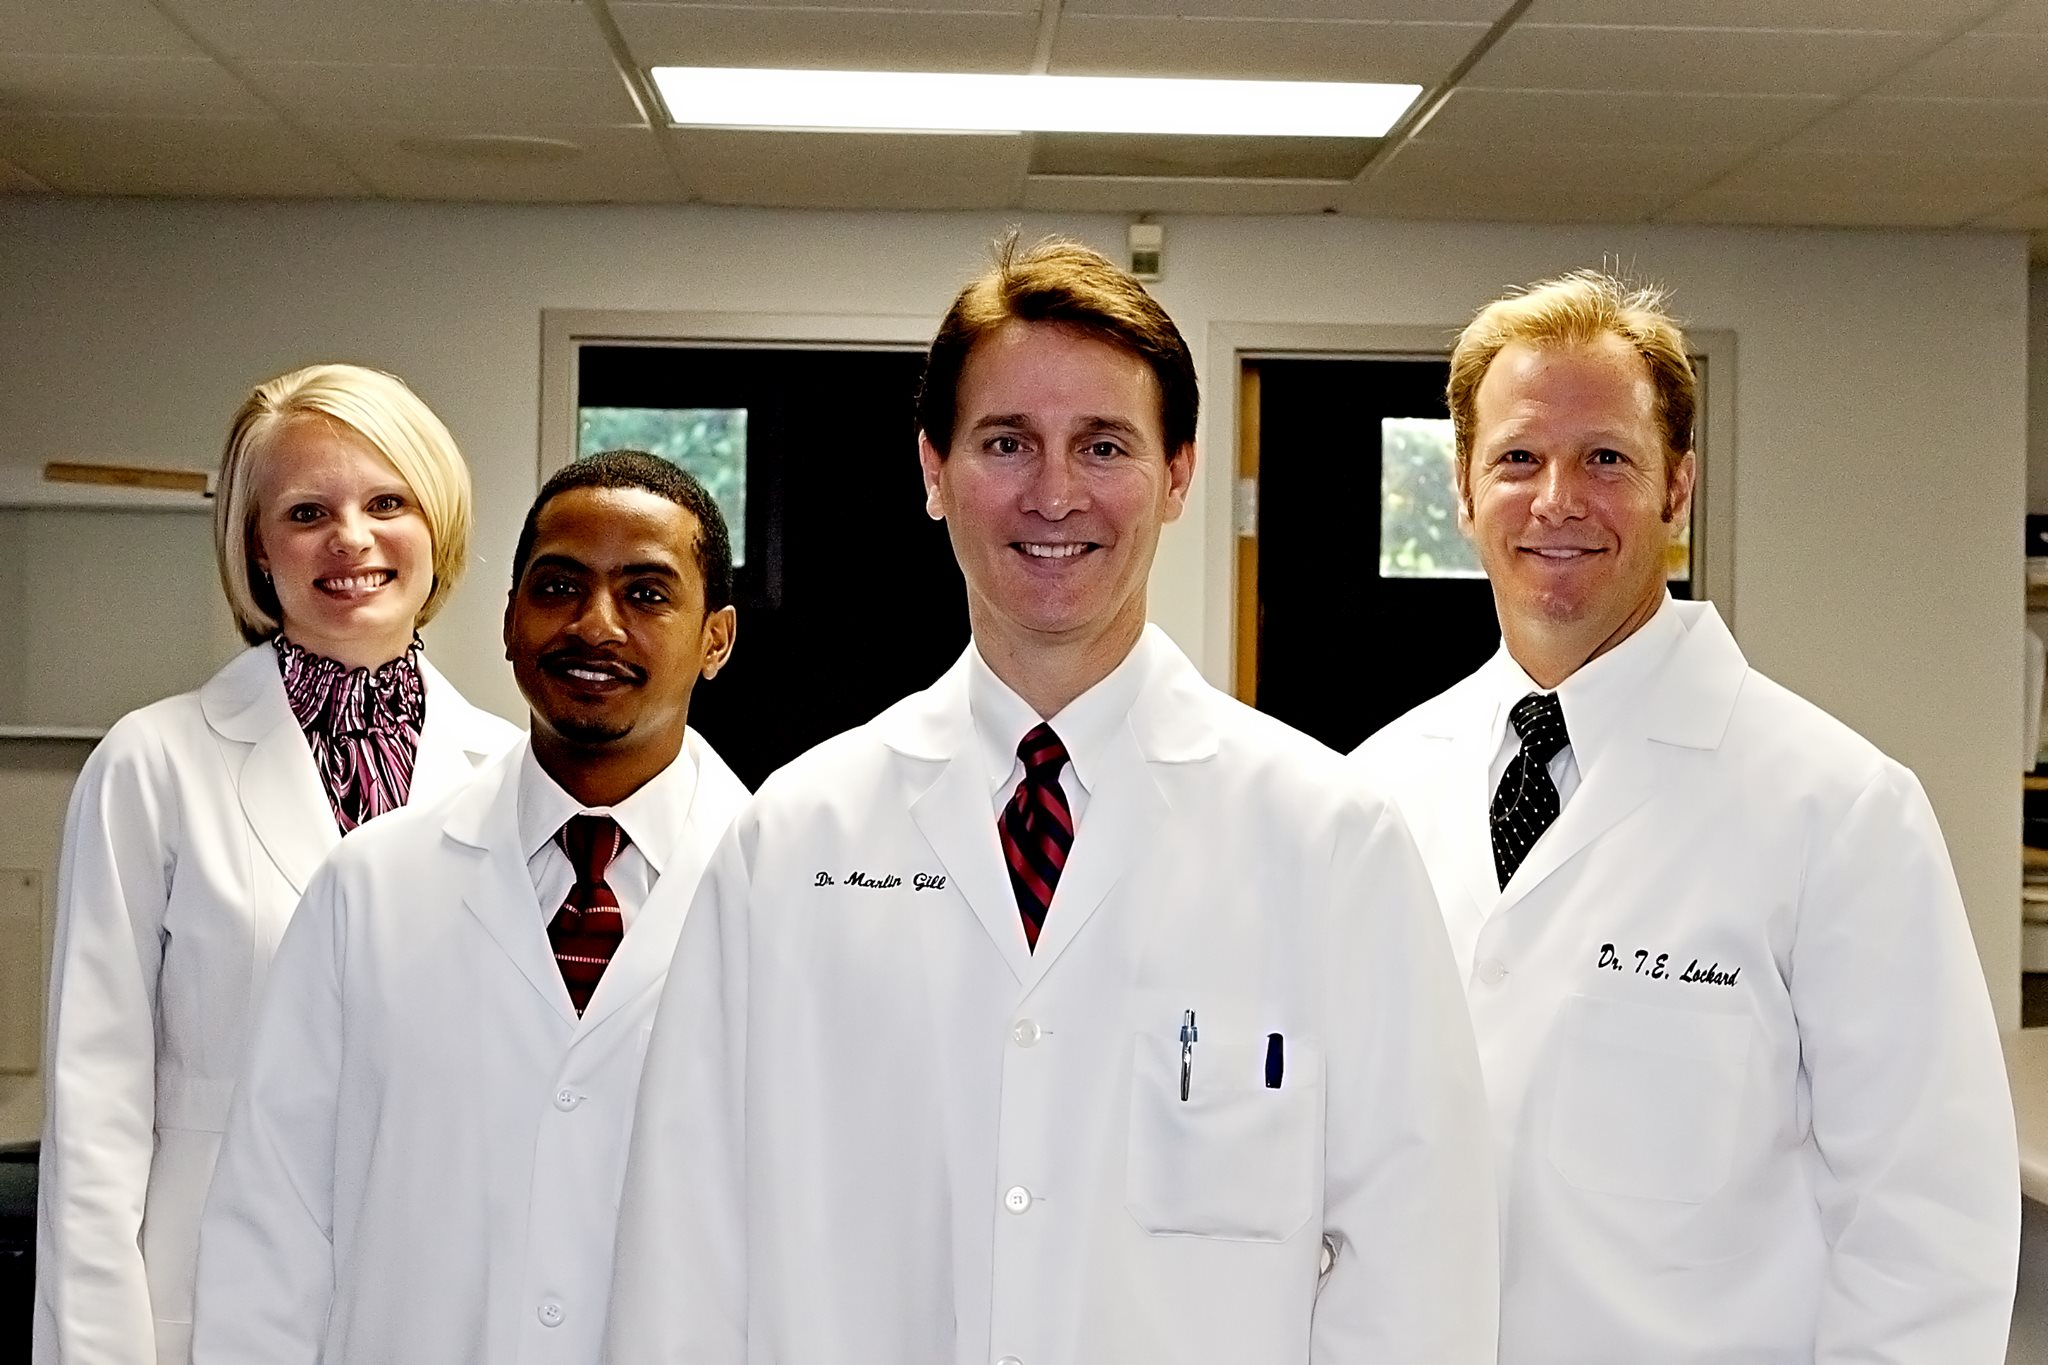 Gill Family Medicine | Family Practice in 2422 Danville Rd SW - Decatur AL - Reviews - Photos - Phone Number